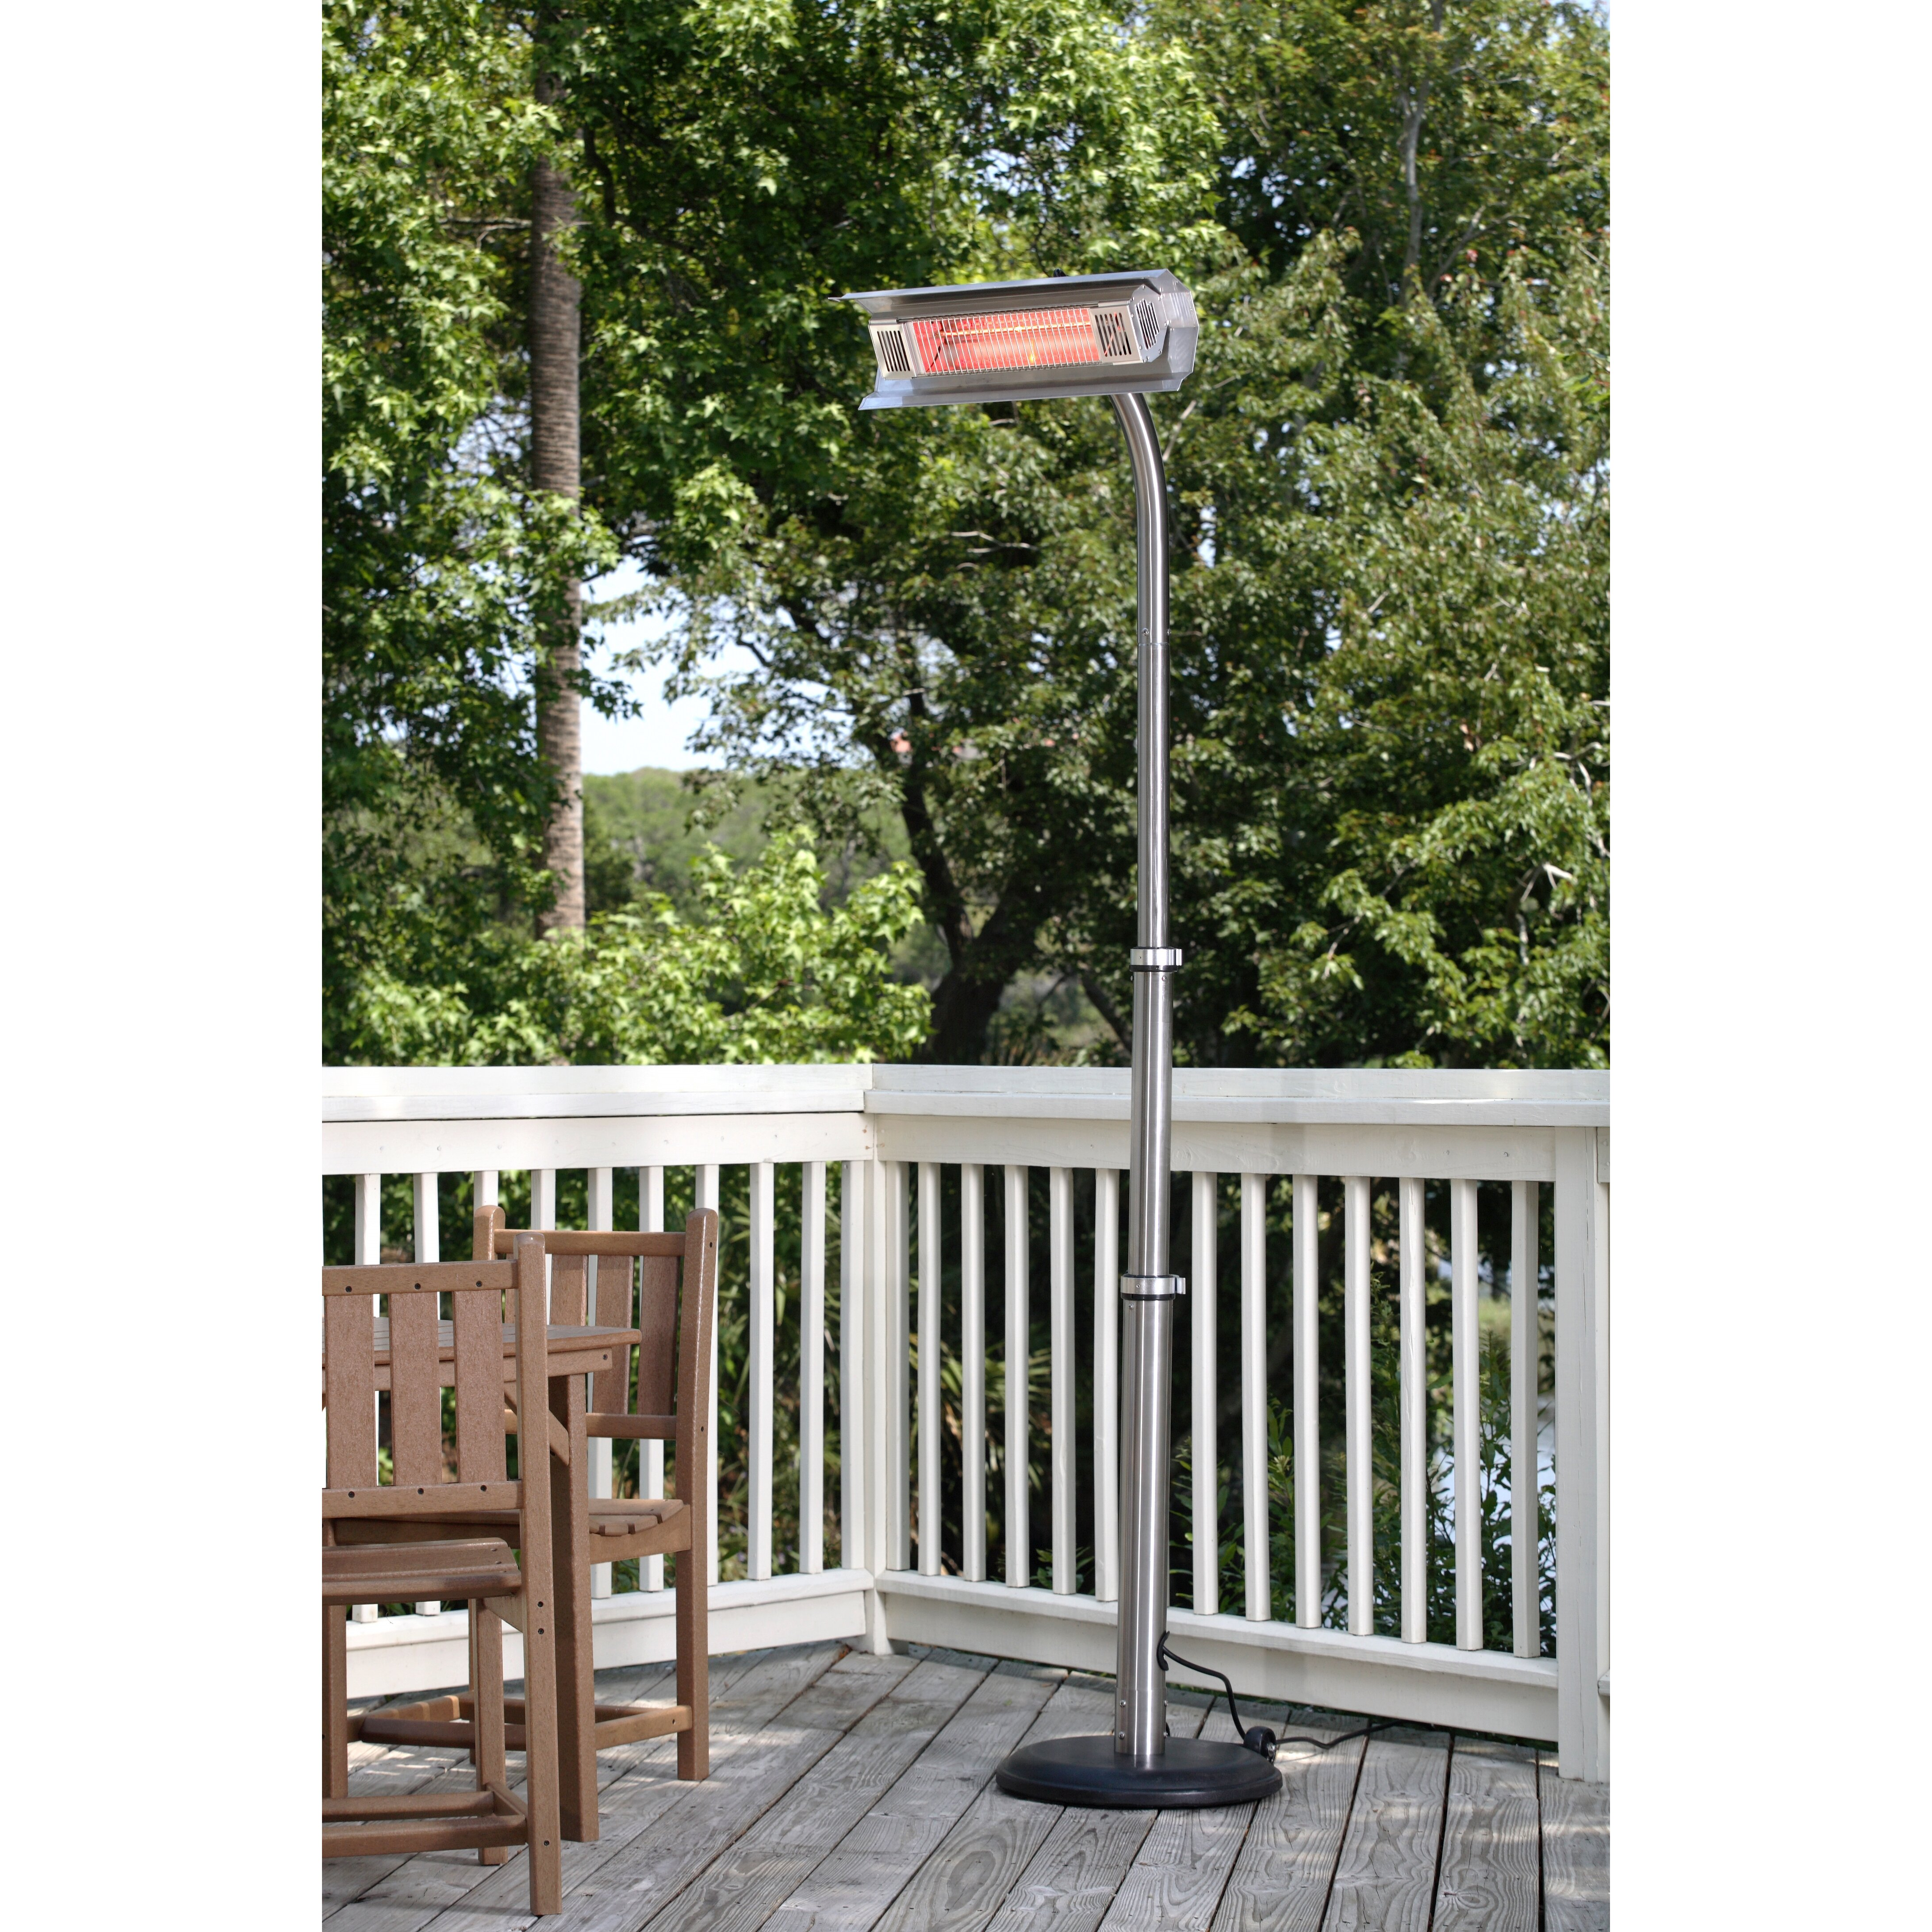 Fire Sense 1500 Watt Electric Patio Heater Reviews – Fire Sense Patio Heater